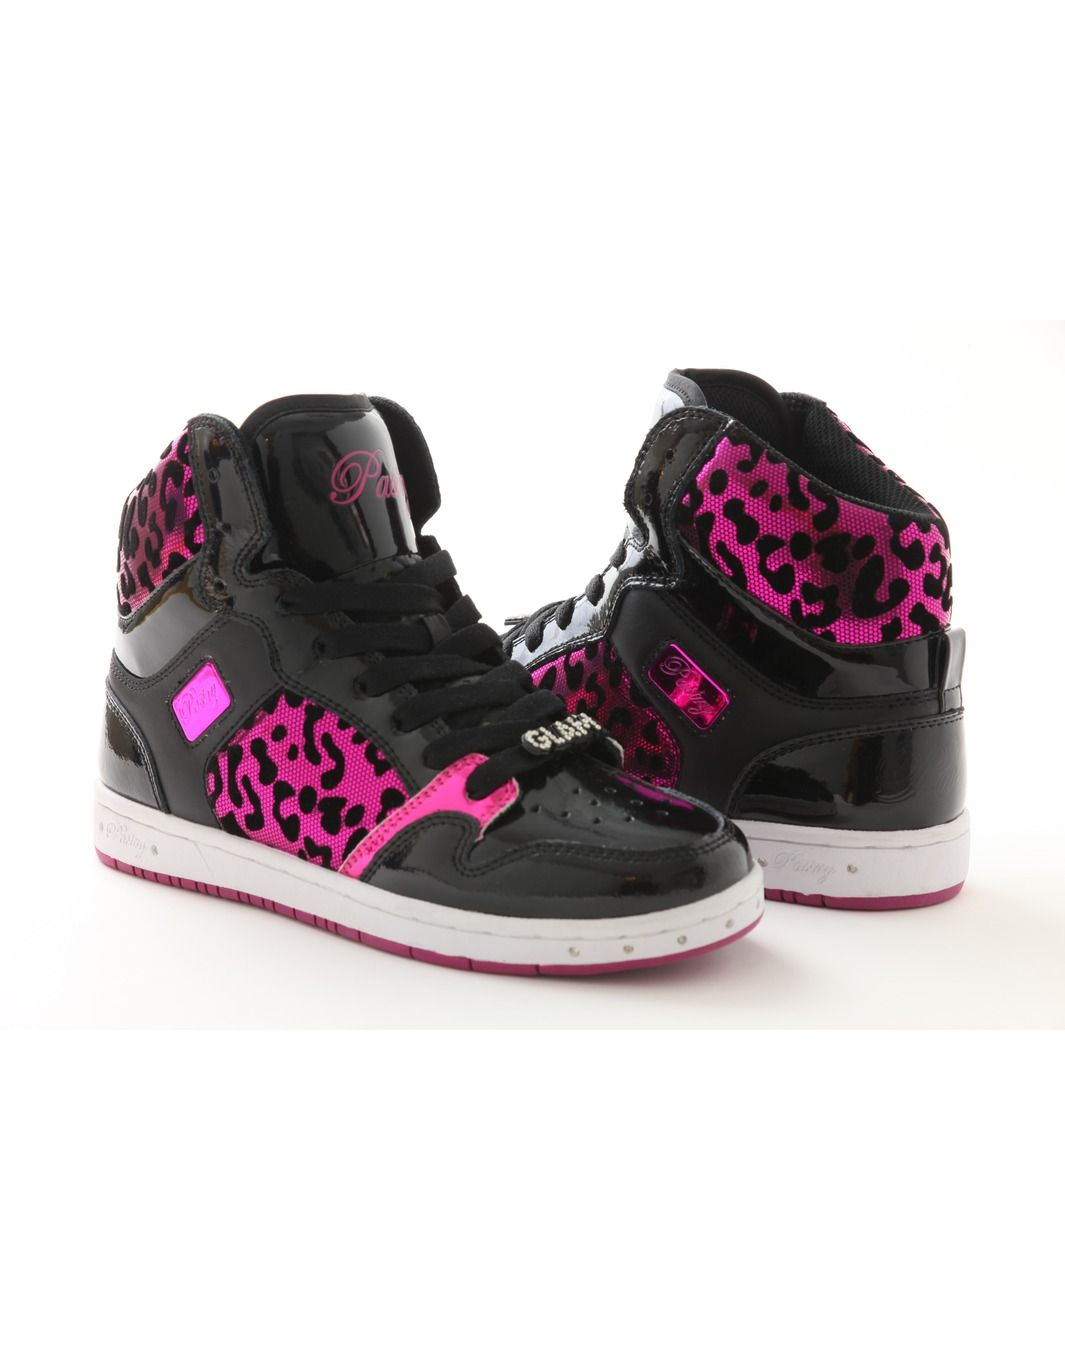 c2d6b65ec3d Footwear - Glam Pie Foil Cheetah - Pink - Official Pastry Shoes by ...